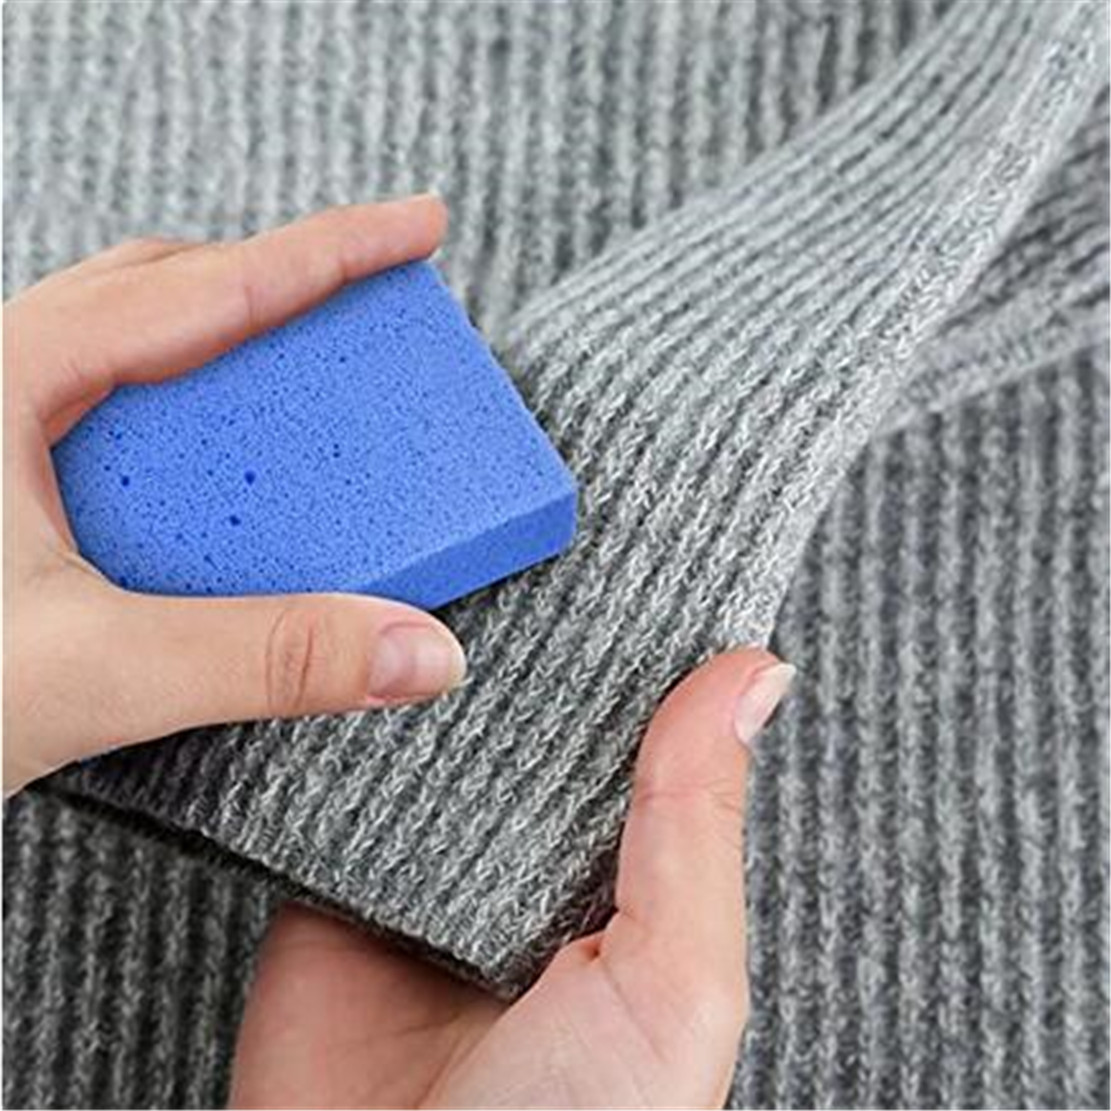 ## 2018 newly Cleaning Products crepe maker Abrasive Stone, grill stone